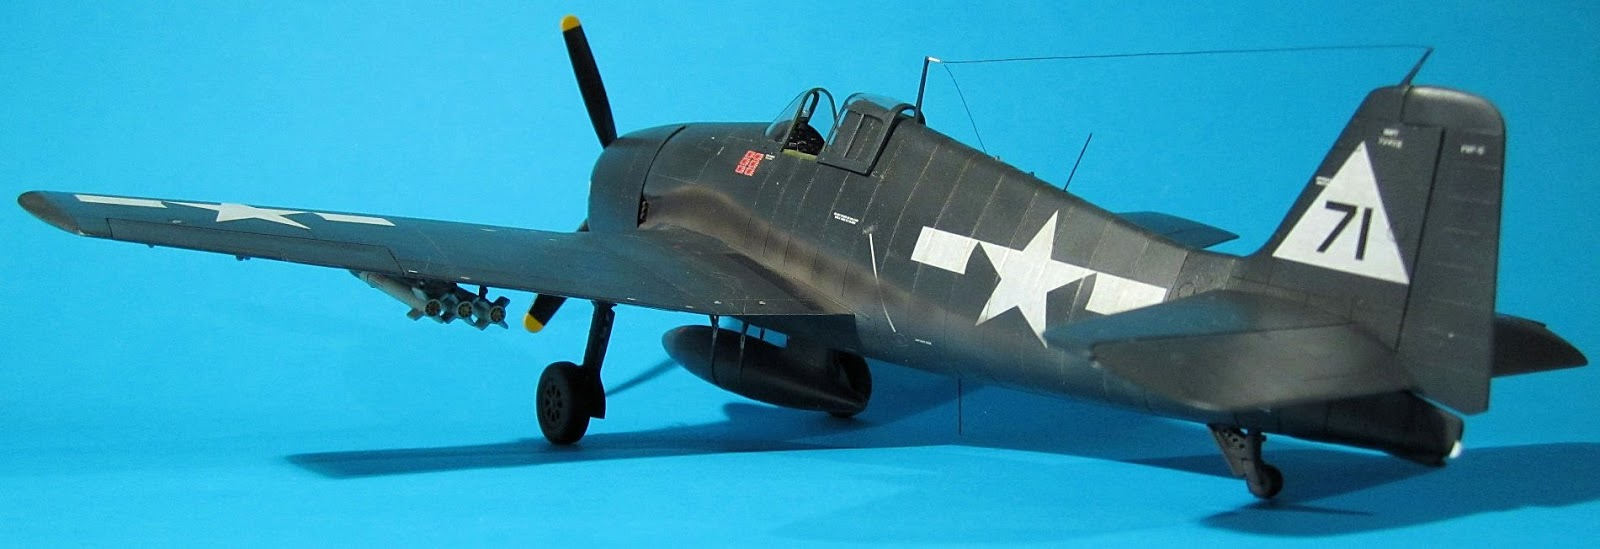 Brett's build of the Eduard Weekend Edition 1/48 Grumman F6F-5 Hellcat